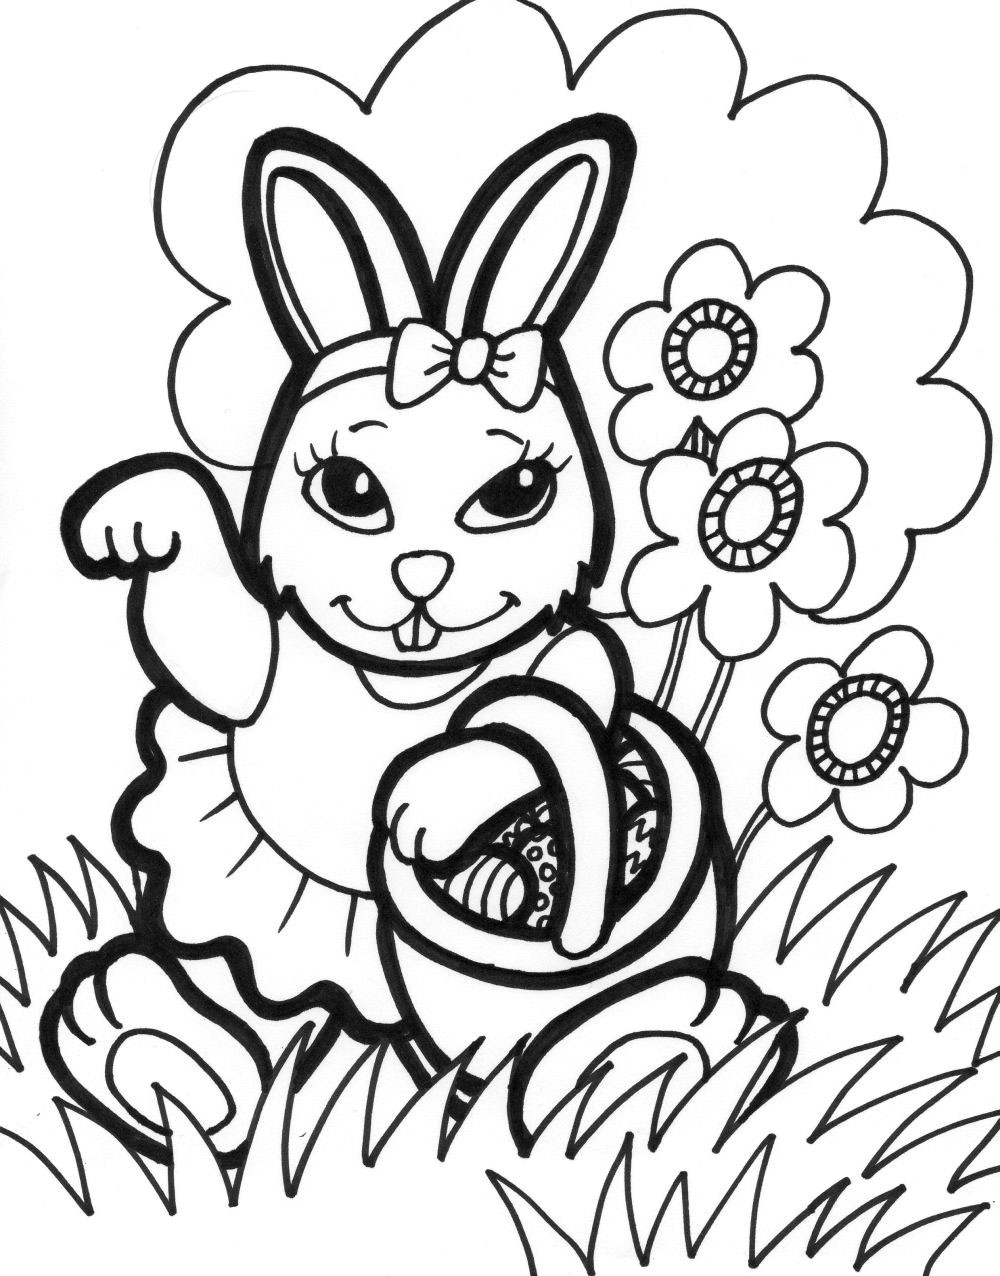 coloring bunnies coloring pages of a rabbit printable free coloring sheets bunnies coloring 1 1